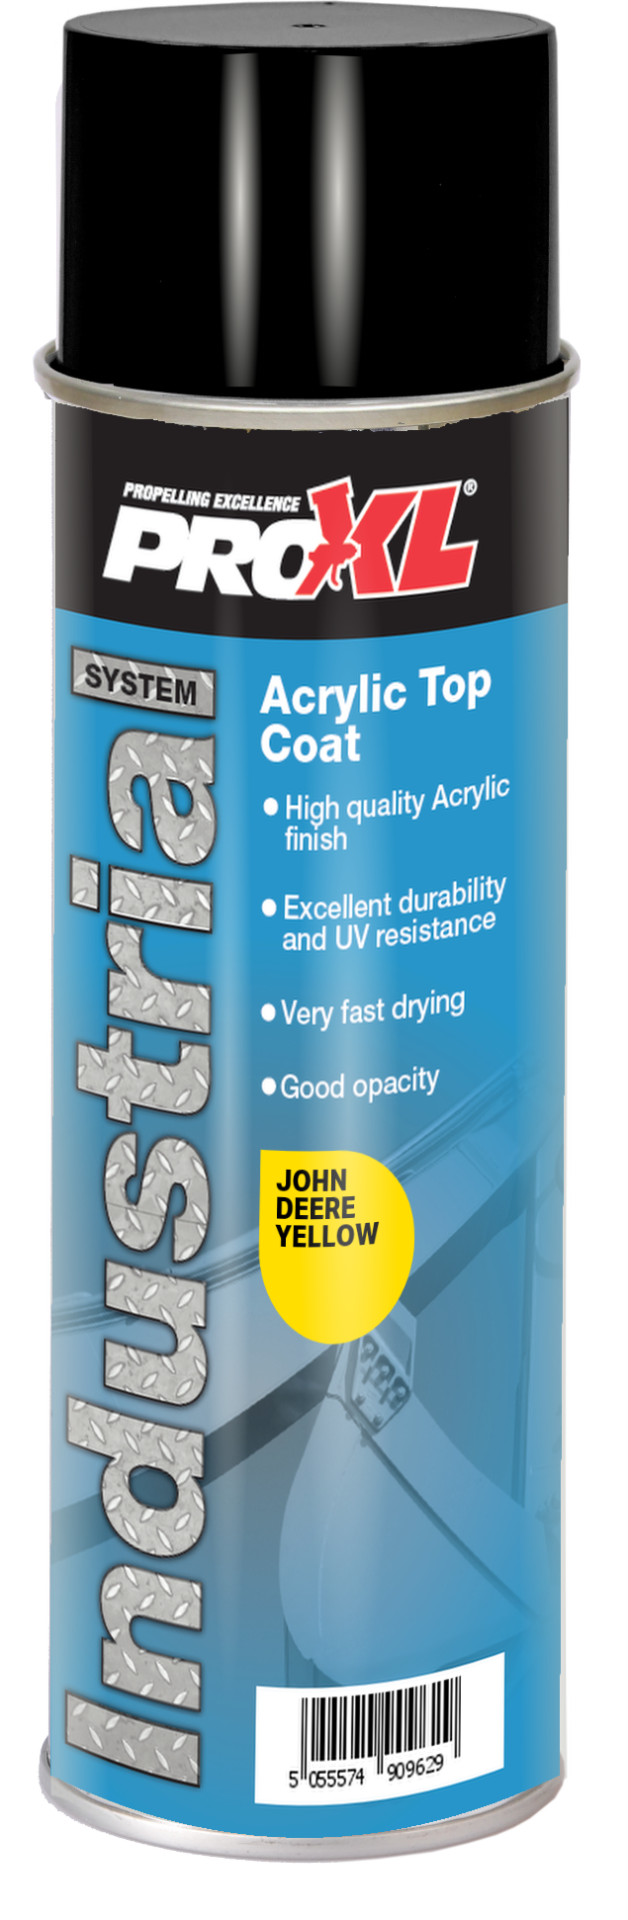 Acrylic Topcoat Aerosol – Agricultural/Construction colours (500ml) Product Image